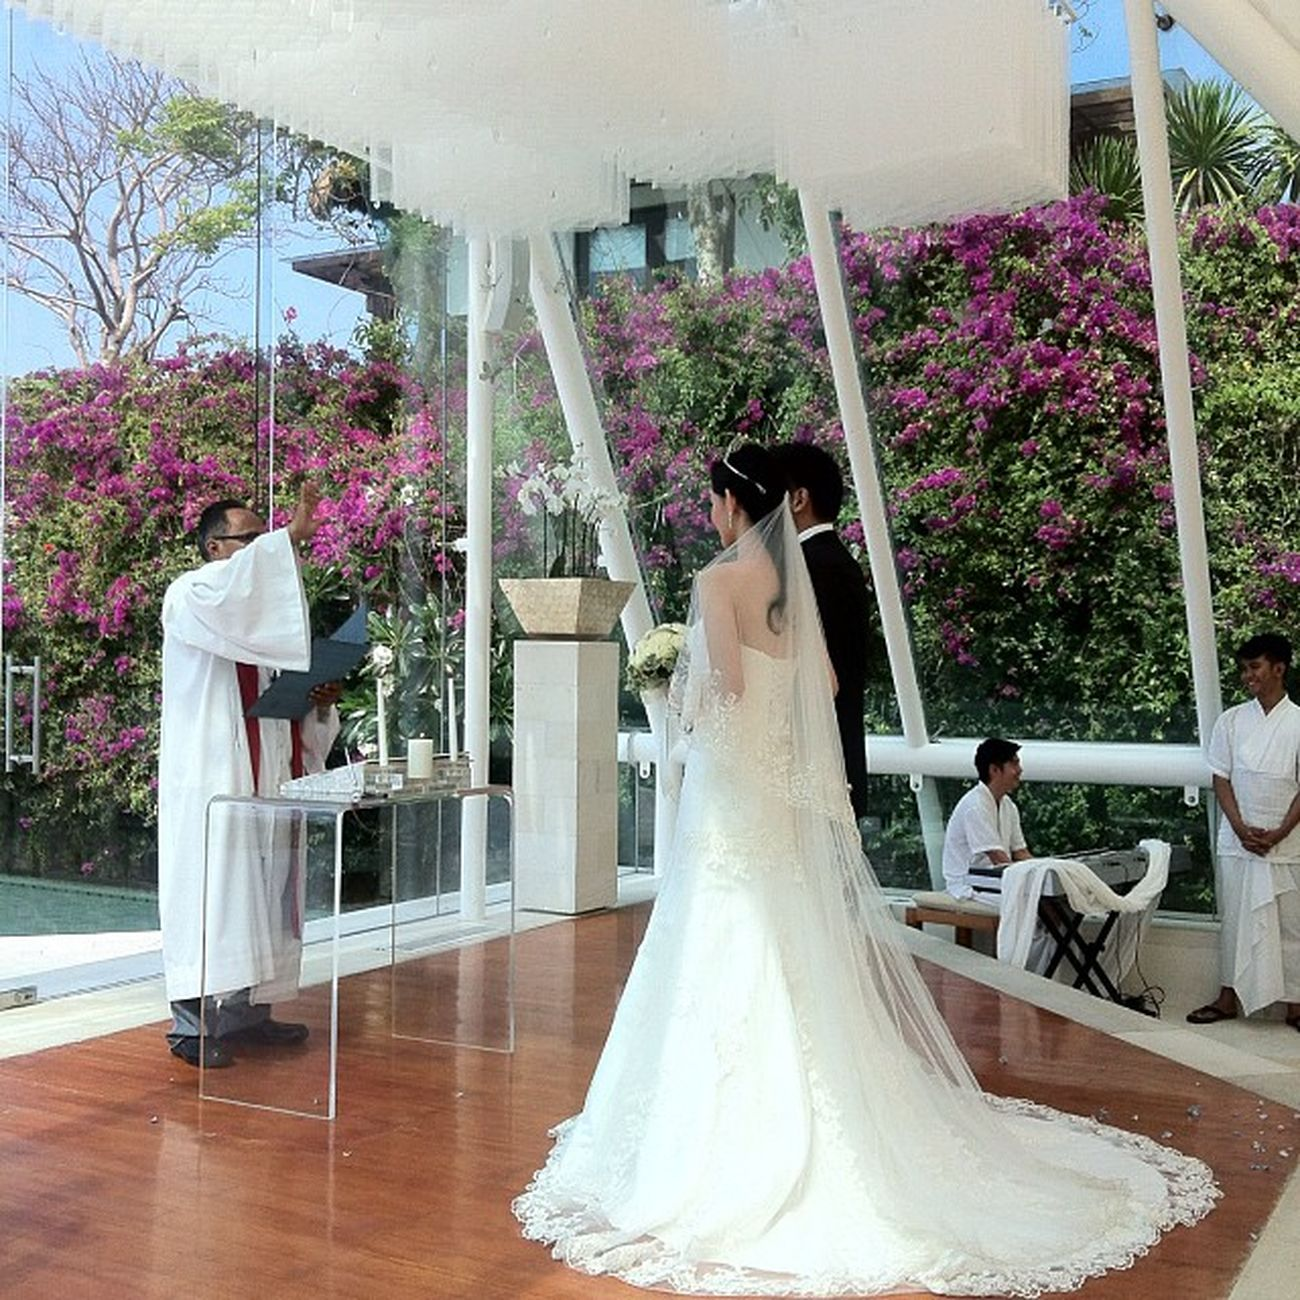 Bride Groom Pastor Chapel wedding weddingevent weddingorganizer wo beach beautiful uluwatu bali instadaily instagram photooftheday